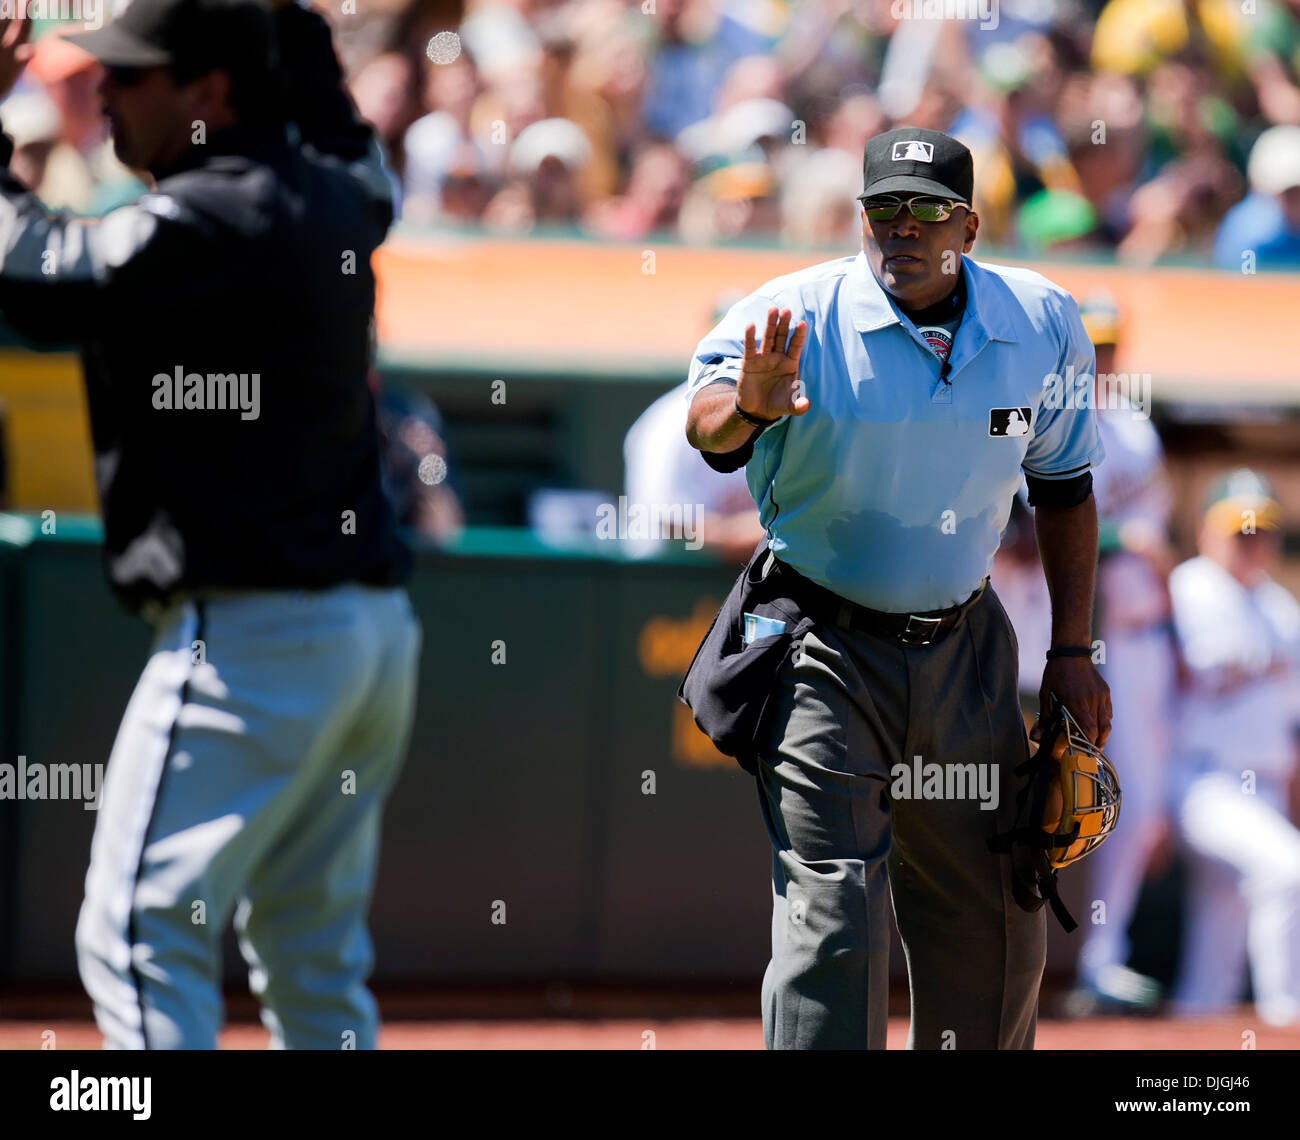 July 24, 2010 - Oakland, CA, United States of America - July 24, 2010: Home plate umpire Laz Diaz warns Sox Manager Ozzie Guillen to return to the dugout during the game between the Oakland A's and the Chicago White Sox at the Oakland-Alameda County Coliseum in Oakland CA. The A's defeated the White Sox 10-2. Mandatory Credit: Damon Tarver/ Southcreek Global. (Credit Image: © South - Stock Image